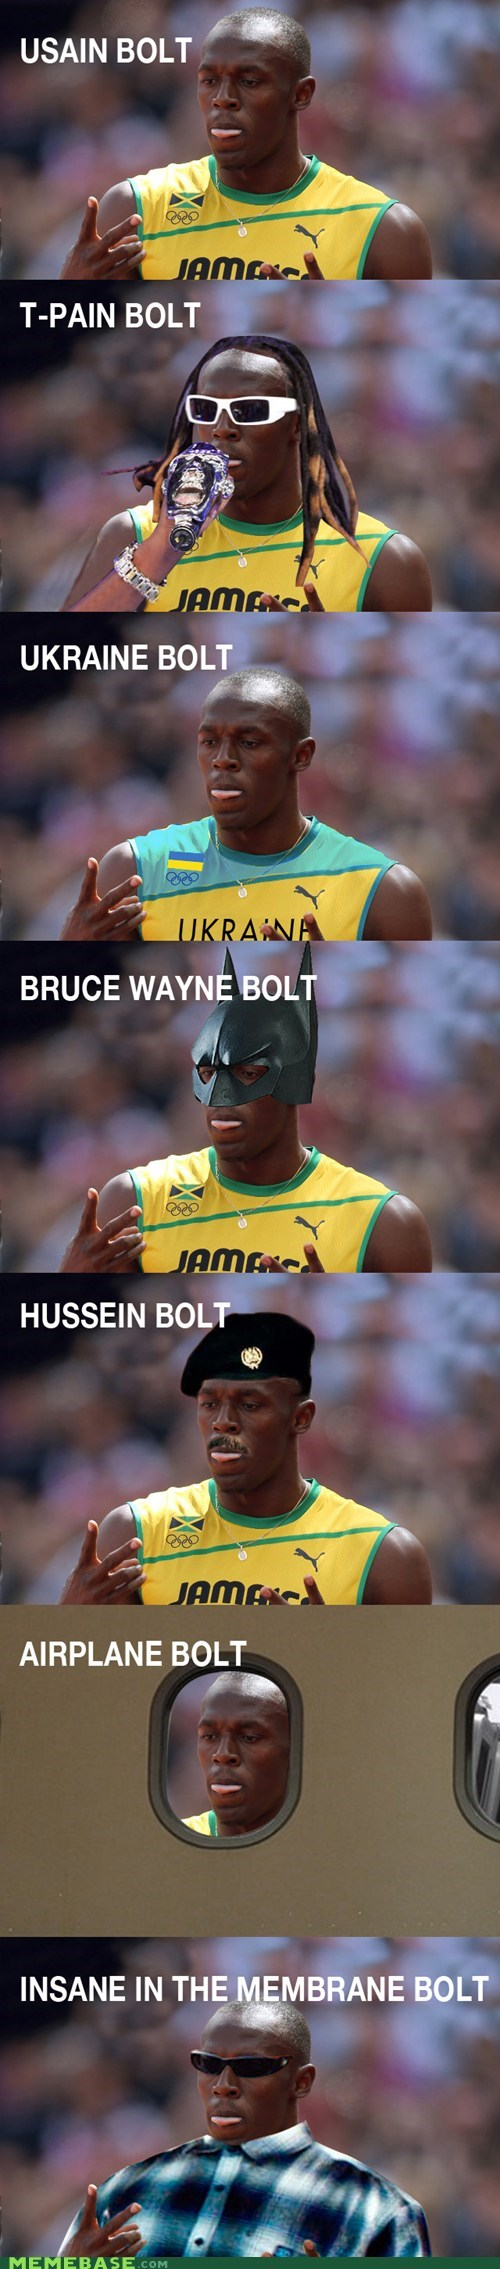 olympics,photoshop,puns,t pain,usain bolt